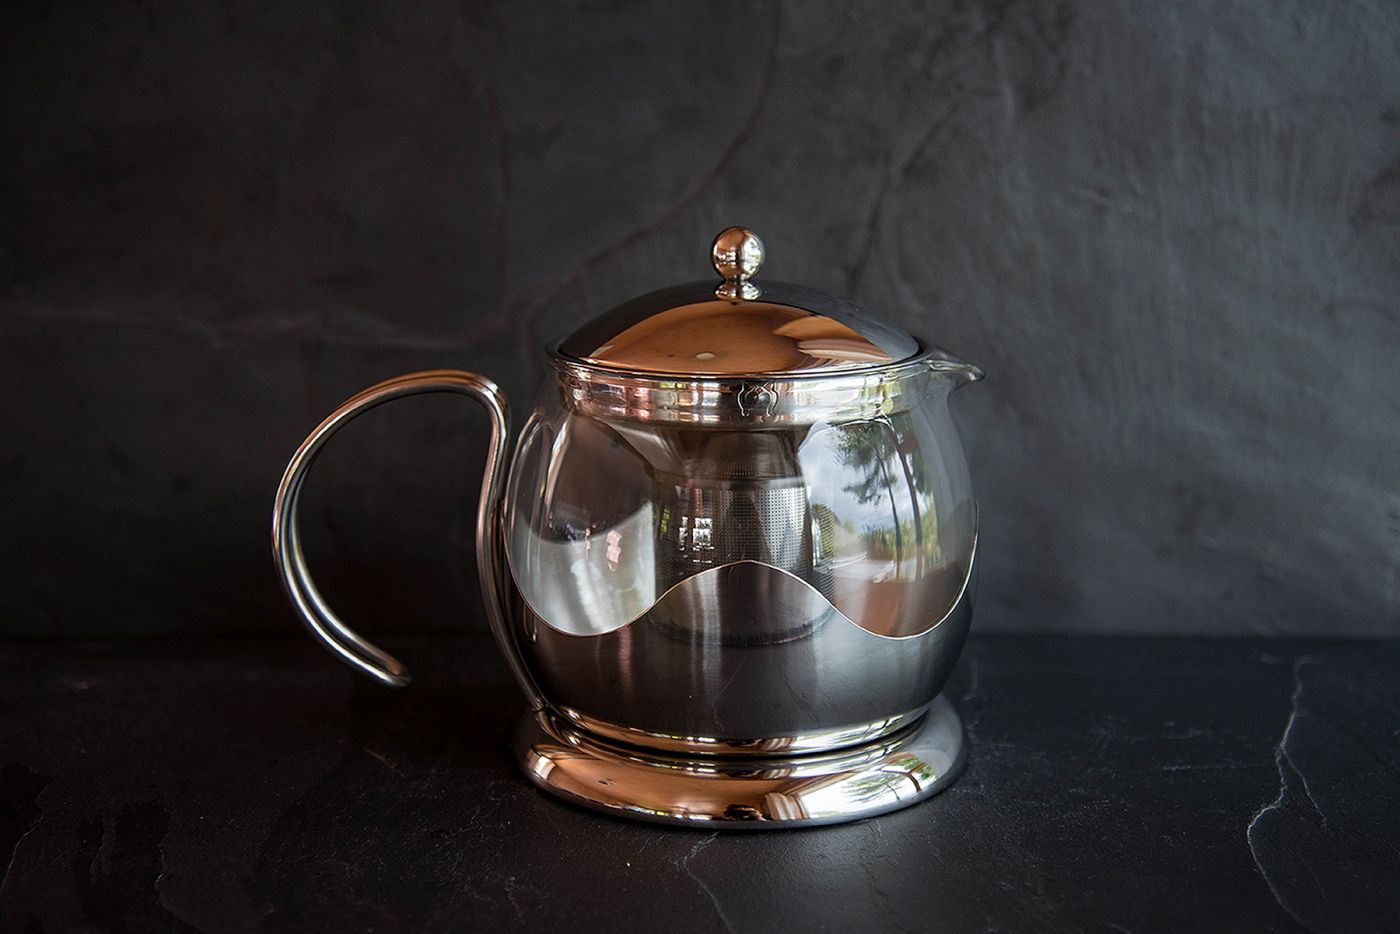 Le Teapot 4 Cup Stainless Steel Infuser Teapot